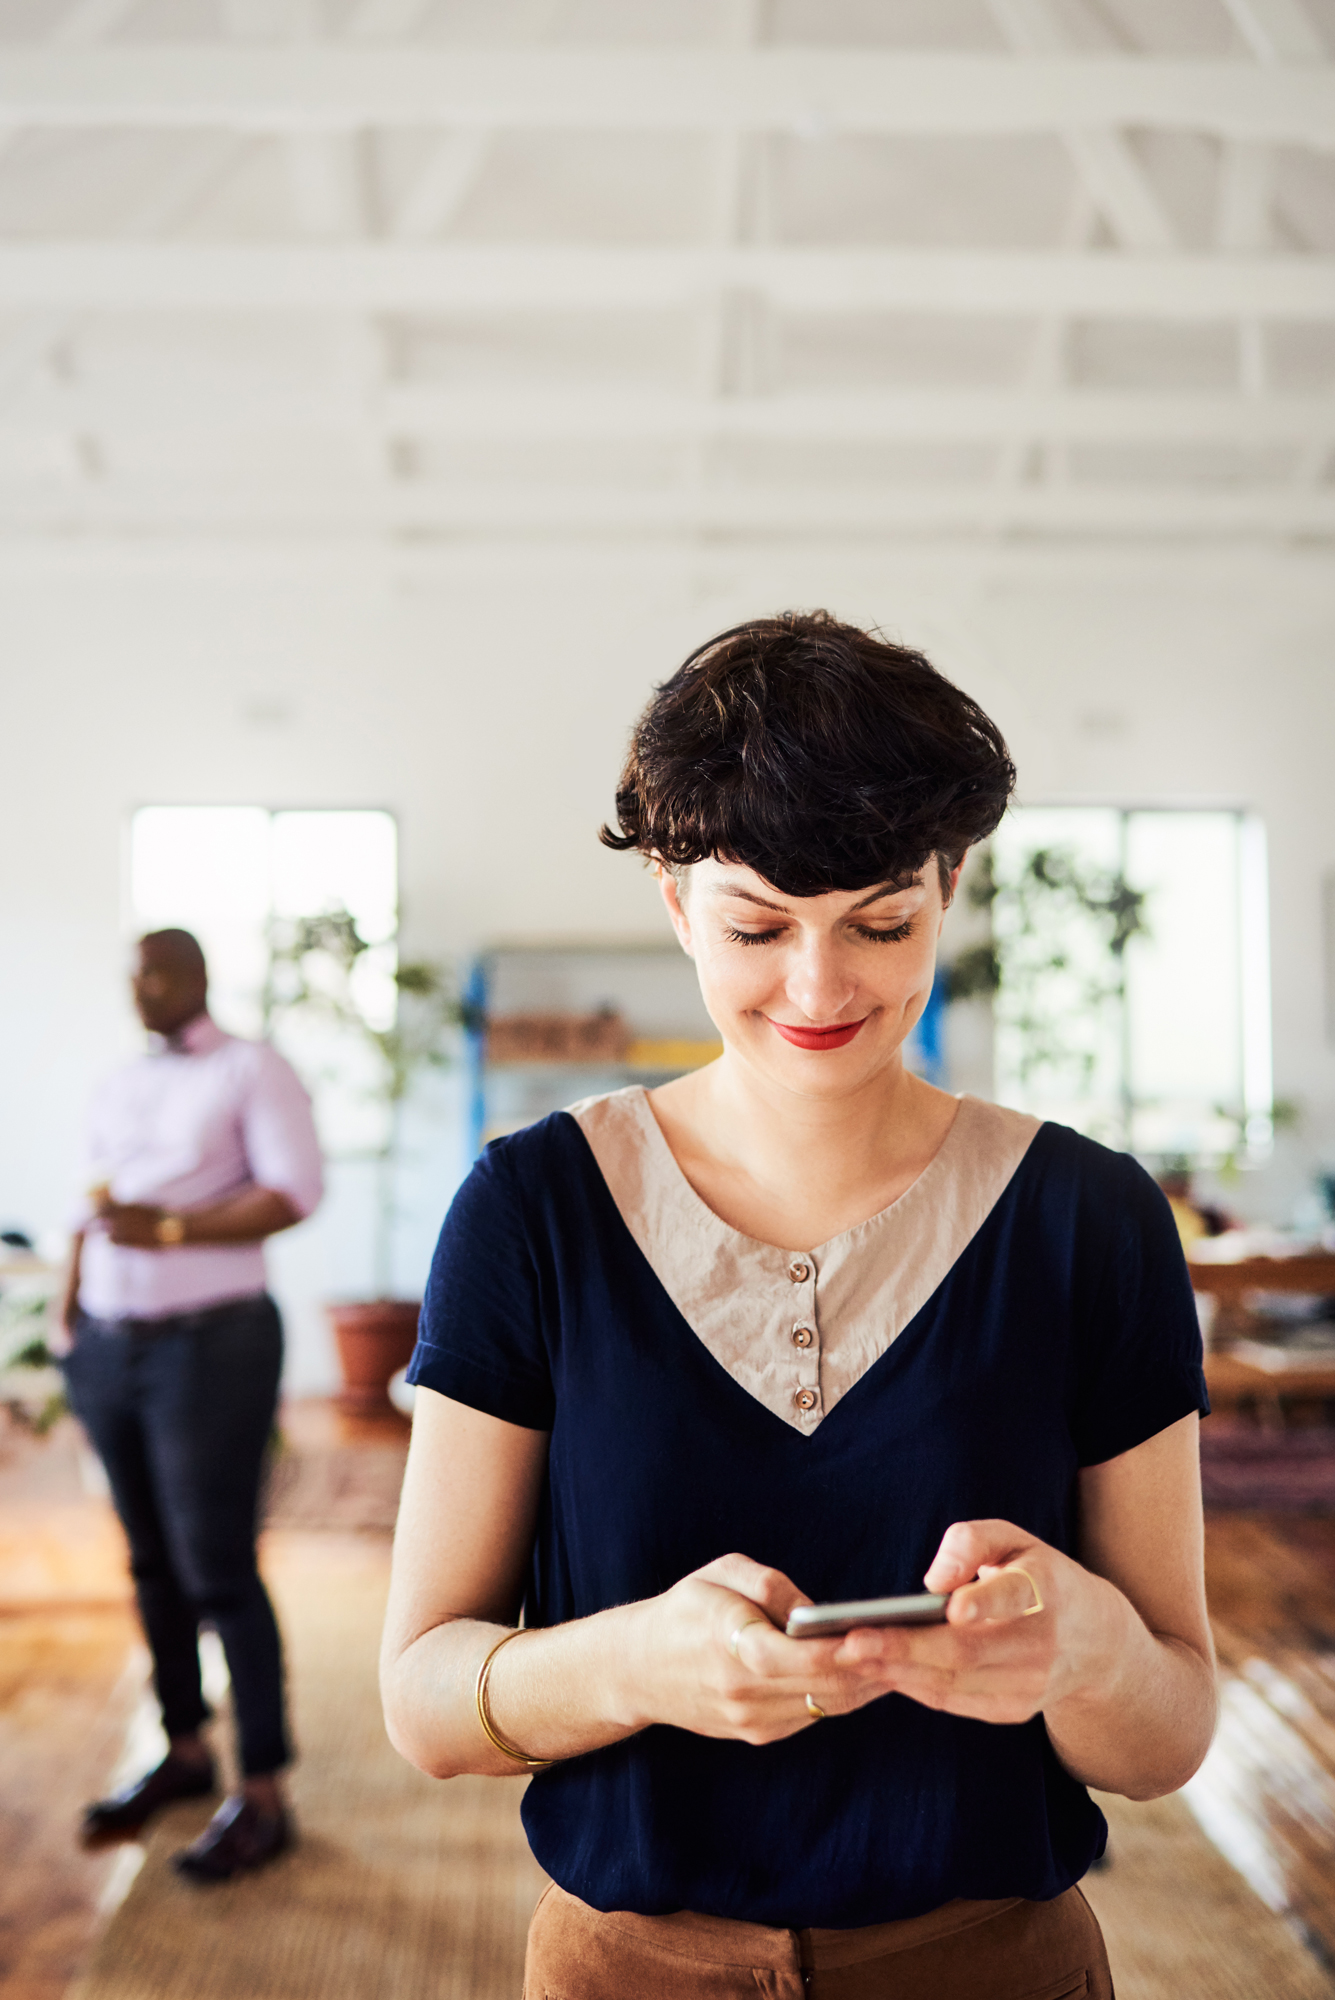 woman accessing digital workplace via mobile